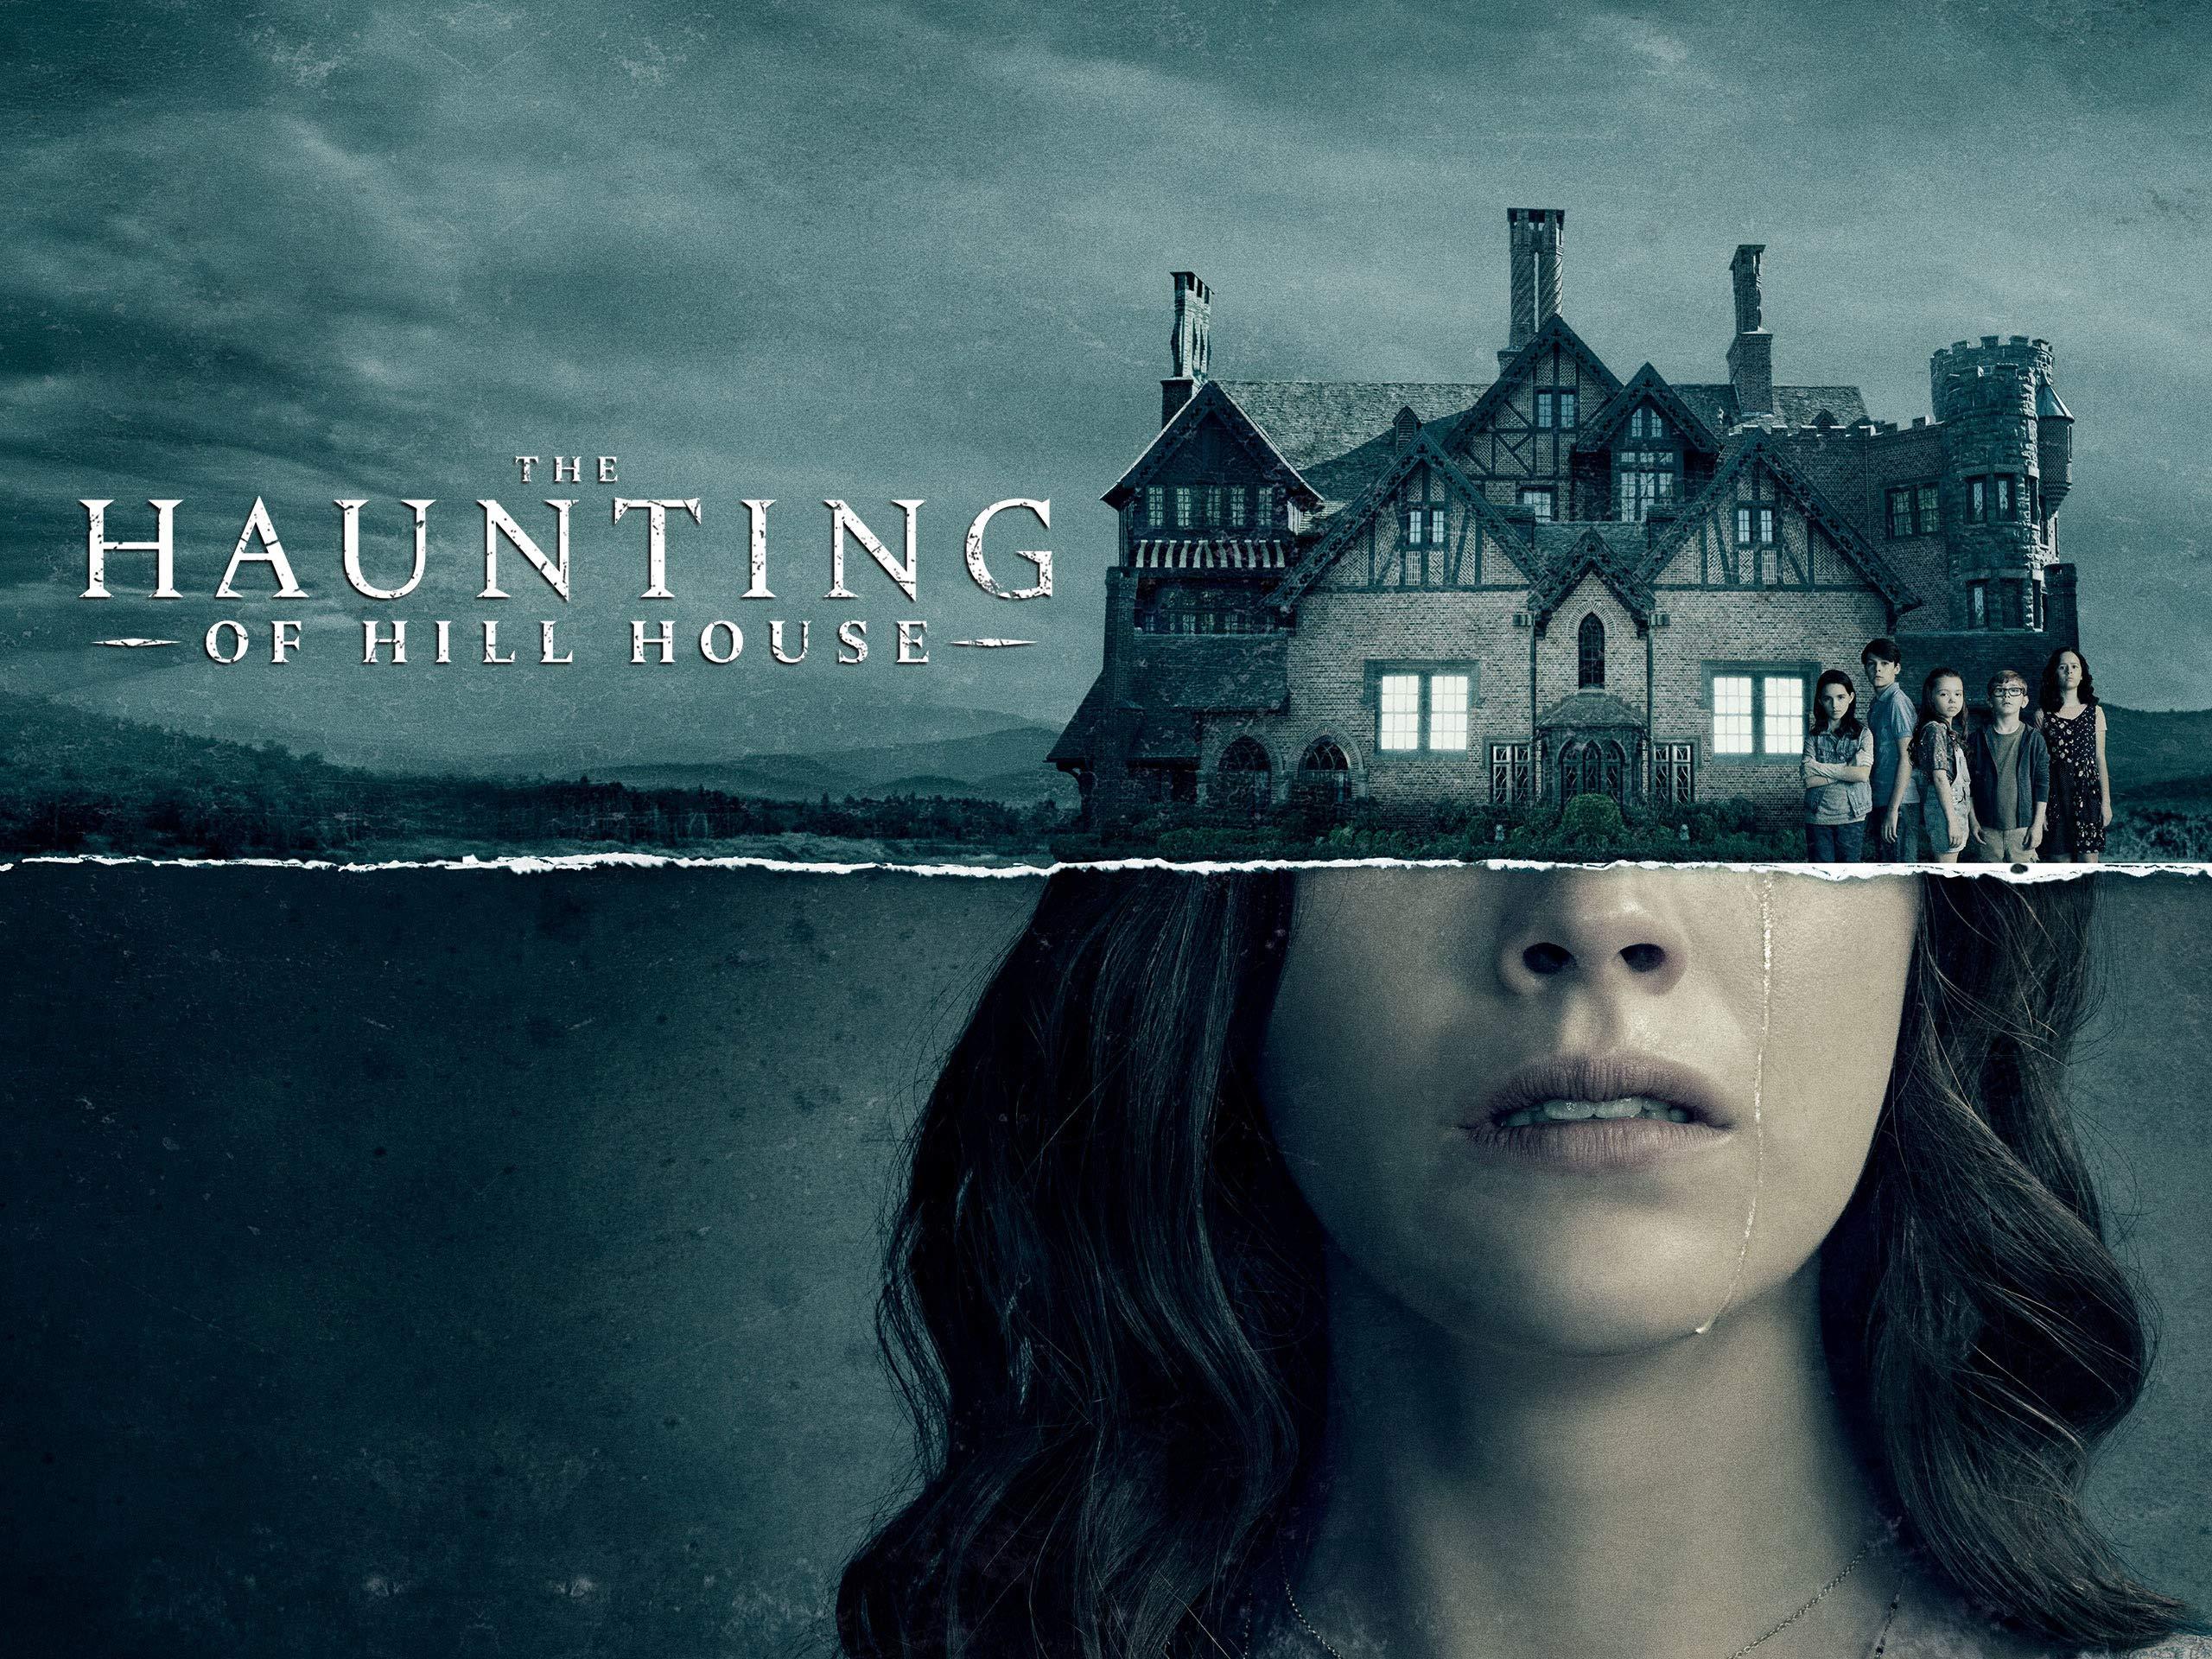 The Haunting of Hill House (2018 series)